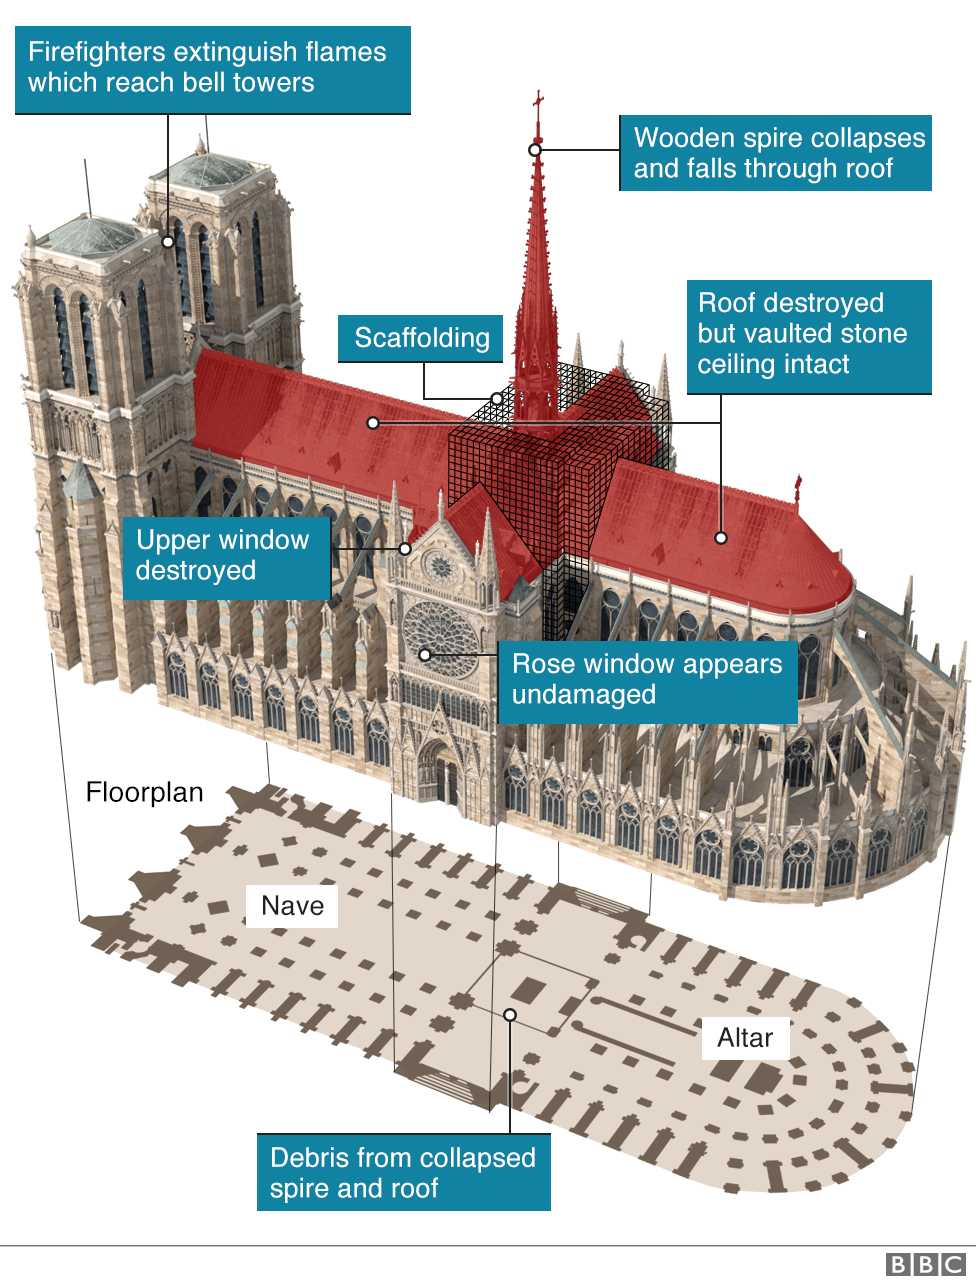 3d model showing what was damaged in the fire